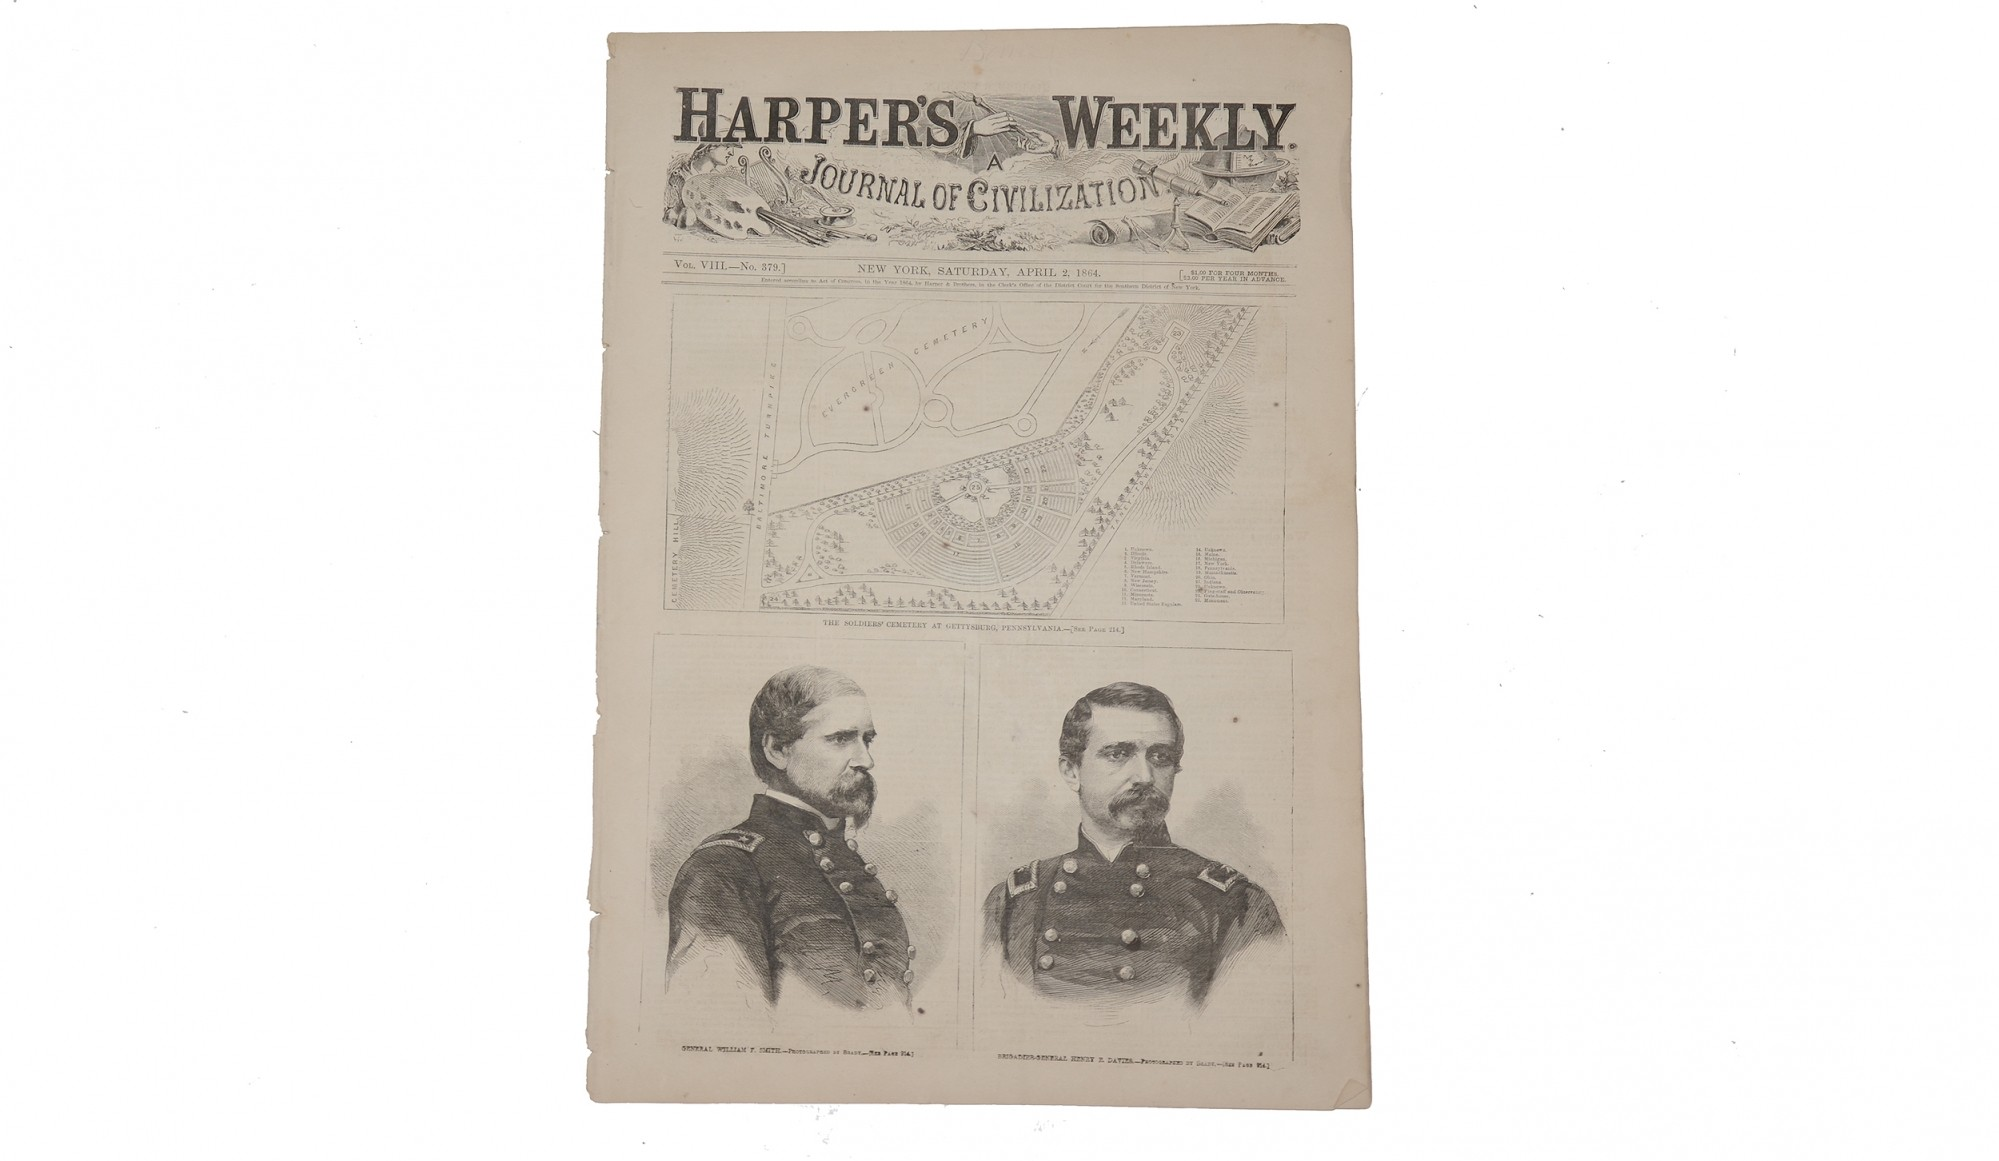 HARPER'S WEEKLY, DATED APRIL 2, 1864 – GETTYSBURG